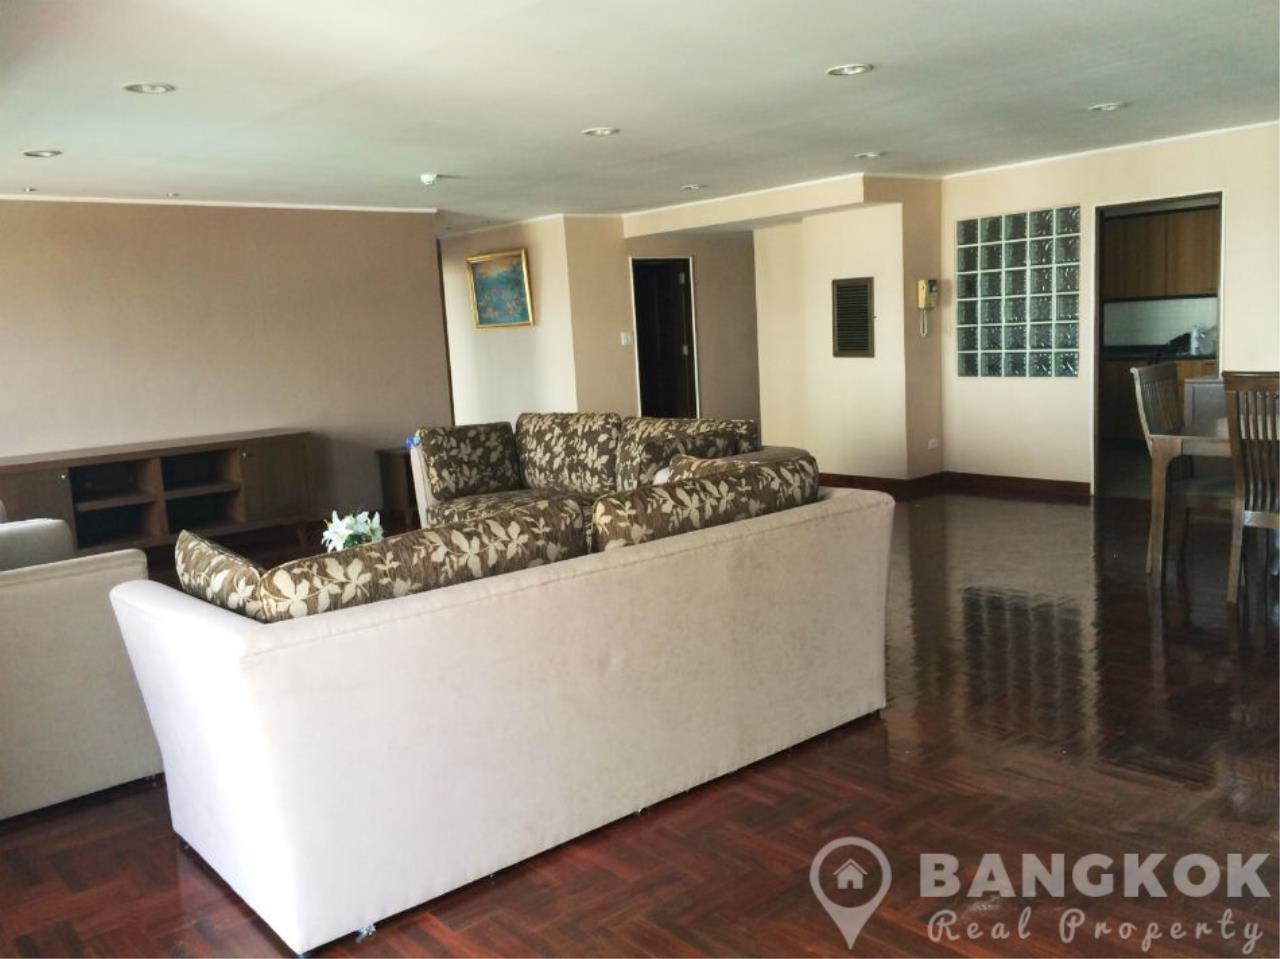 Bangkok Real Property Agency's Casa Viva | Very Spacious 3 Bed 3 Bath Condo in Ekkamai 4